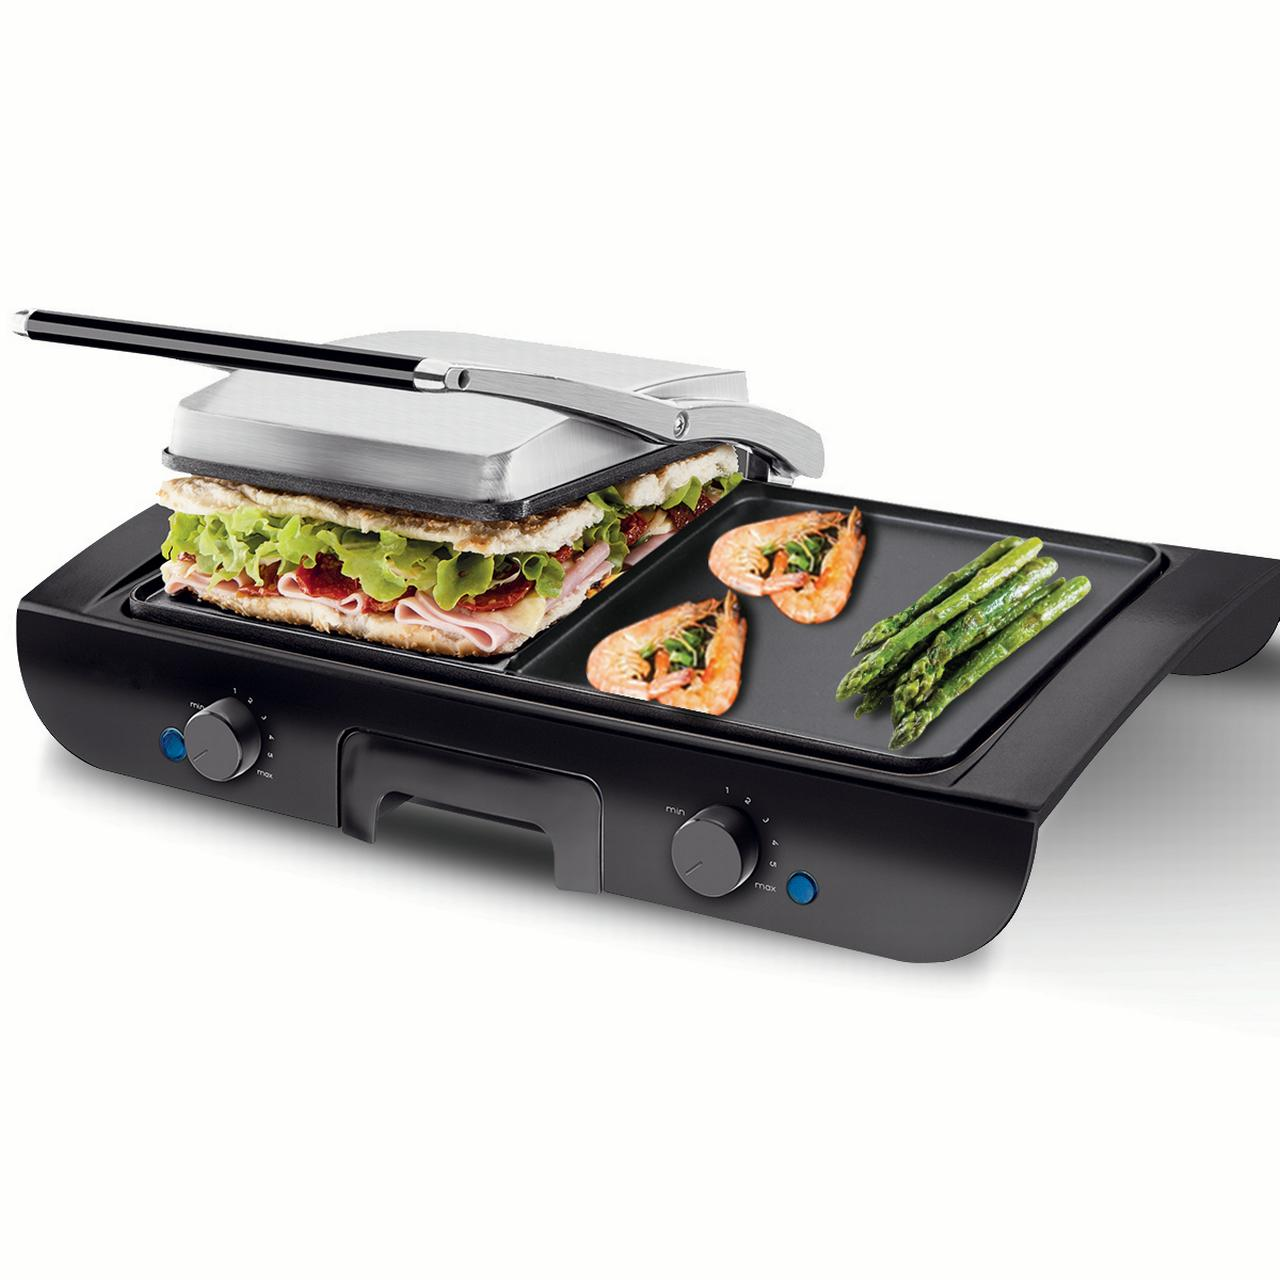 Gymax 1500W Electric 2 In 1 Multi Grill Griddle Sandwich Maker with Nonstick Plates